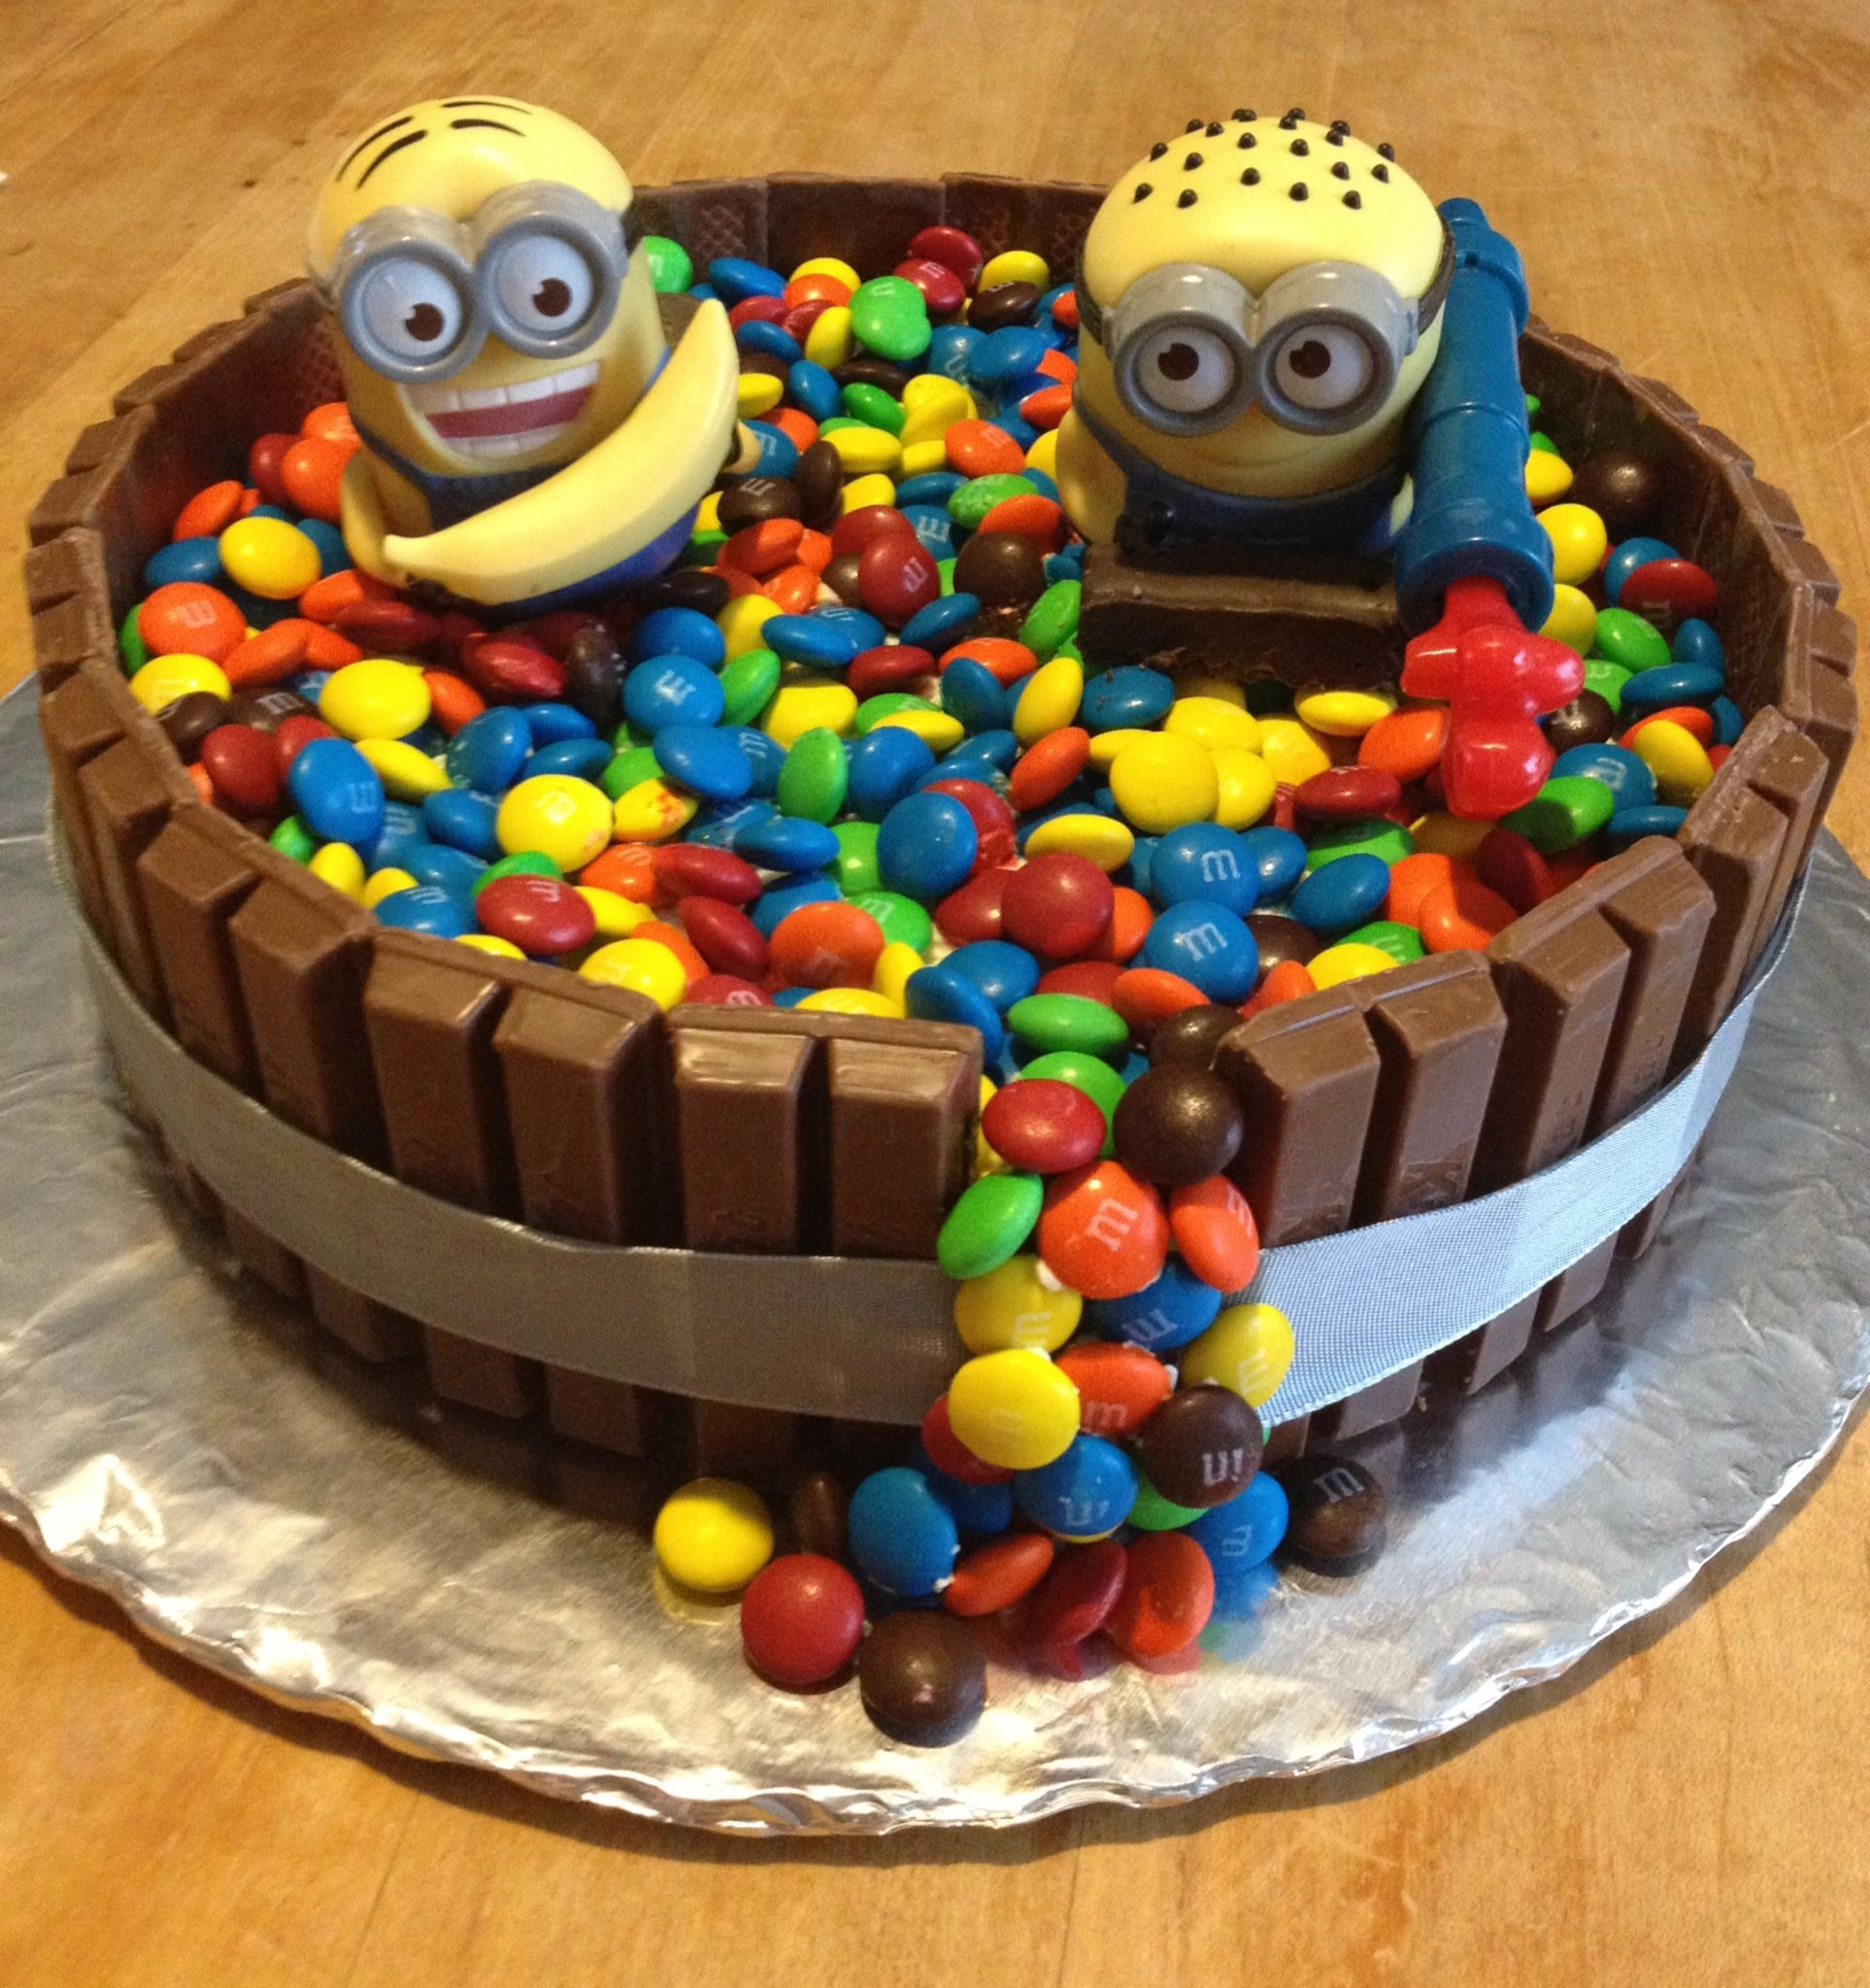 Gateau kitkat m&m's nutella